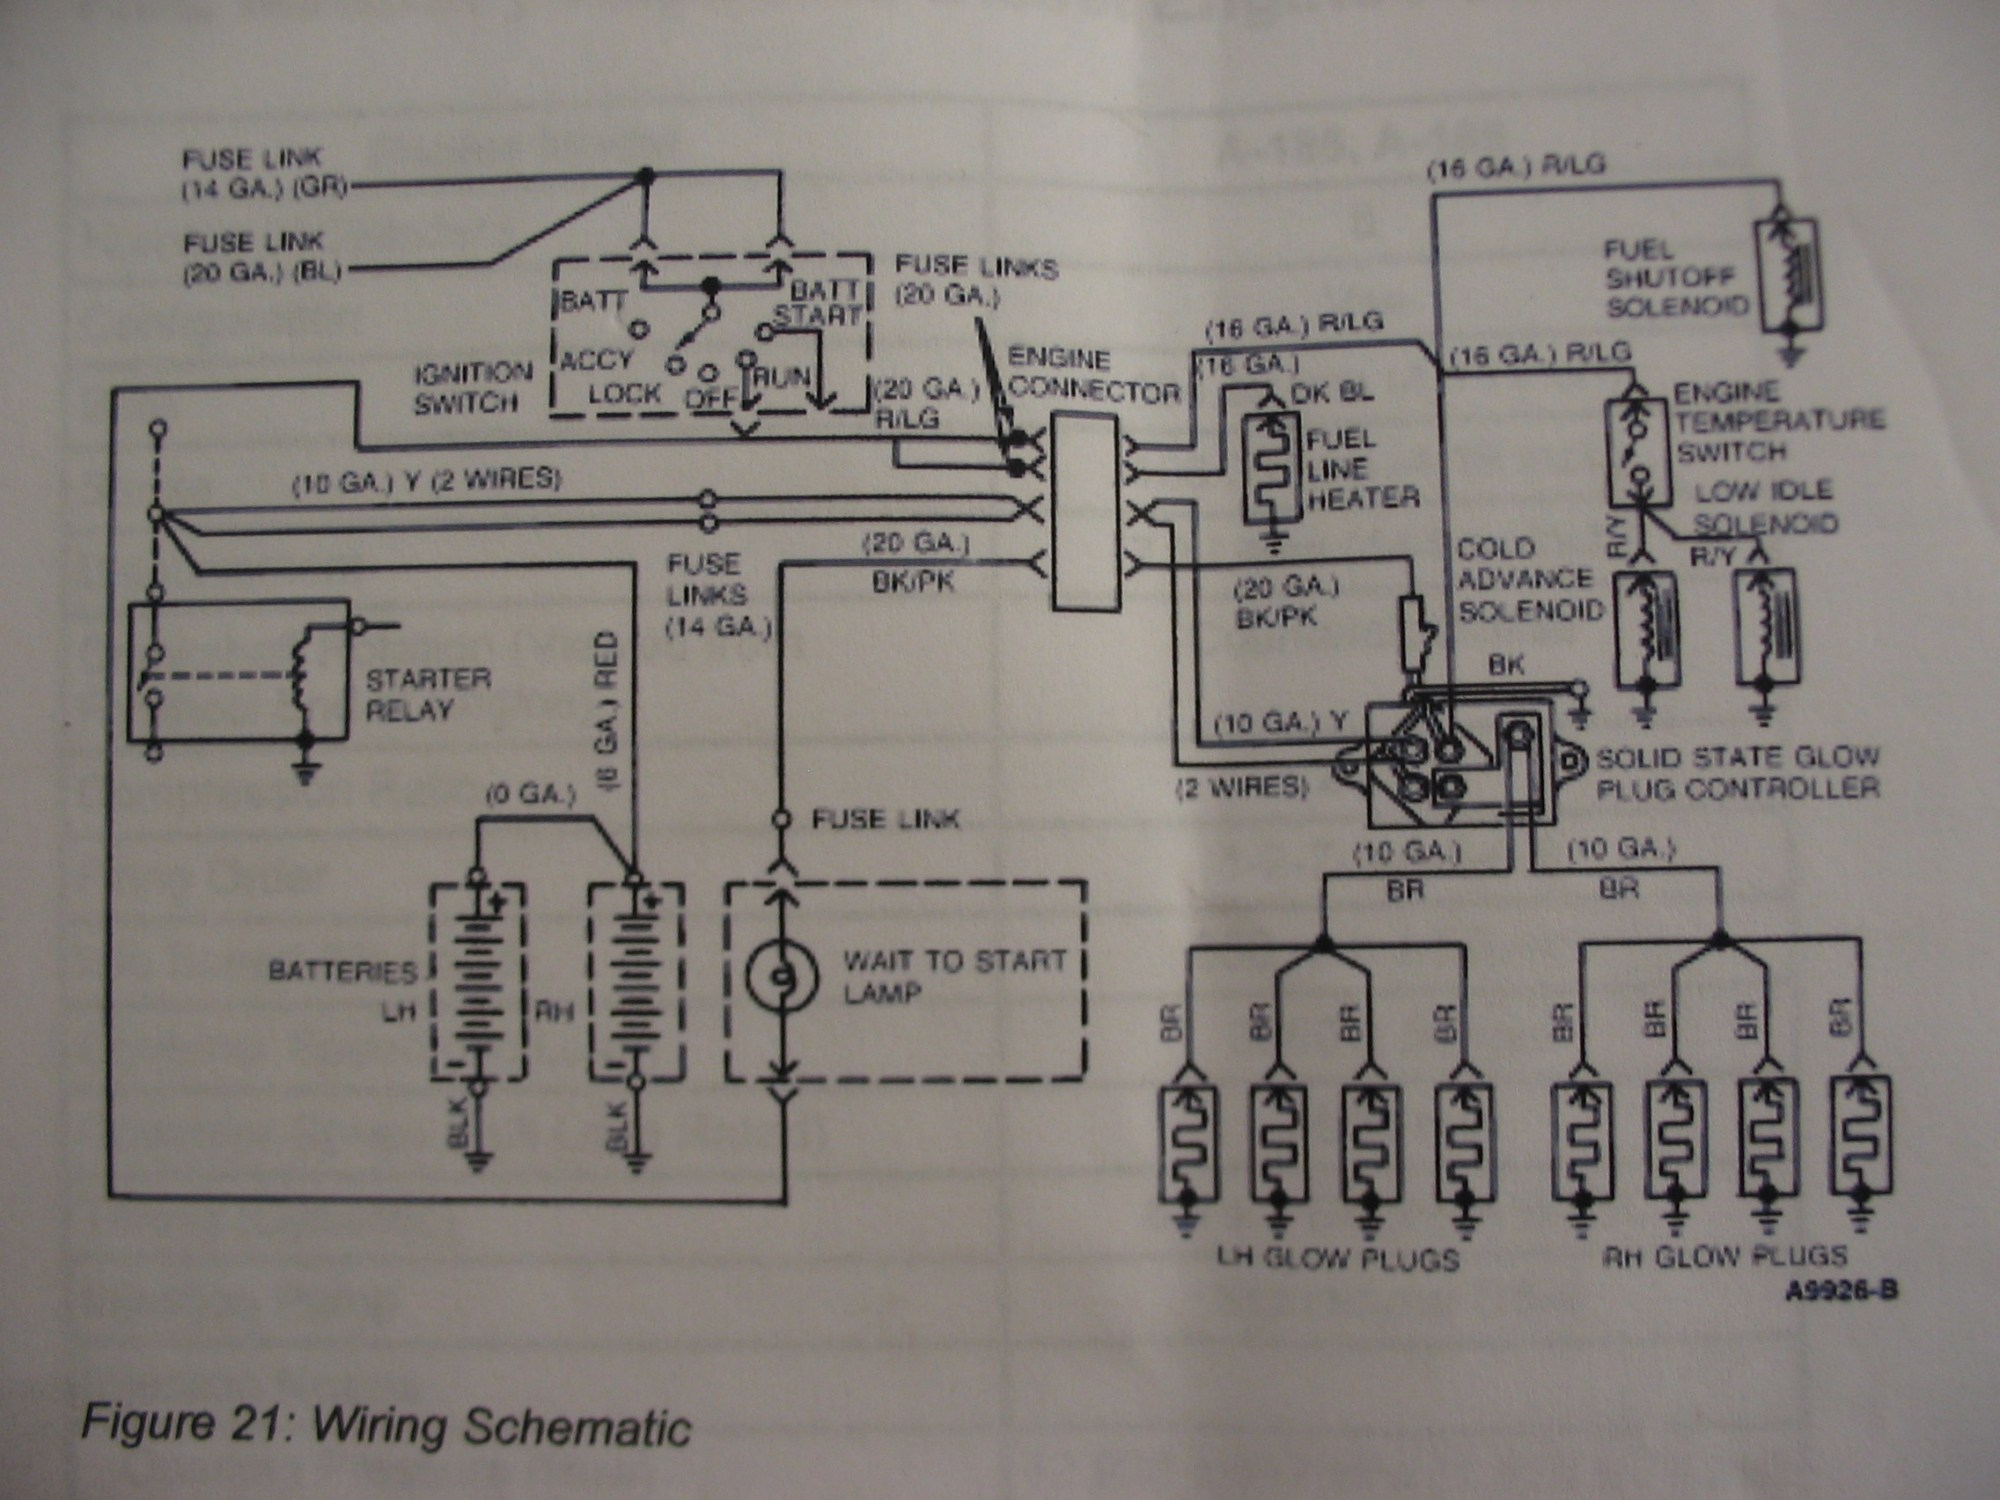 hight resolution of ford diagrams f150 wiring diagram 91 f250 wiring diagram